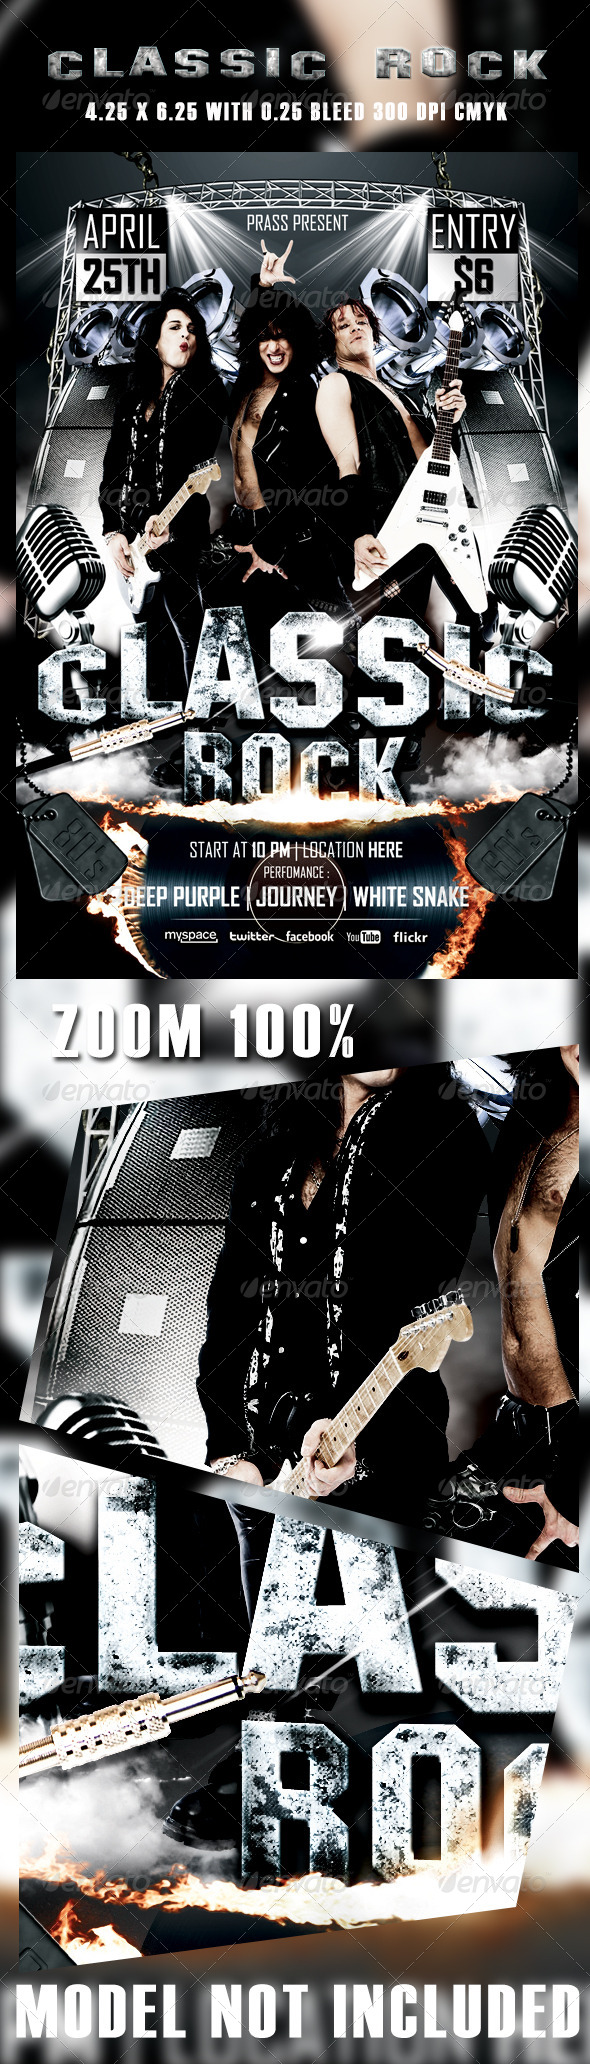 Classic Rocker Flyer Template - Concerts Events